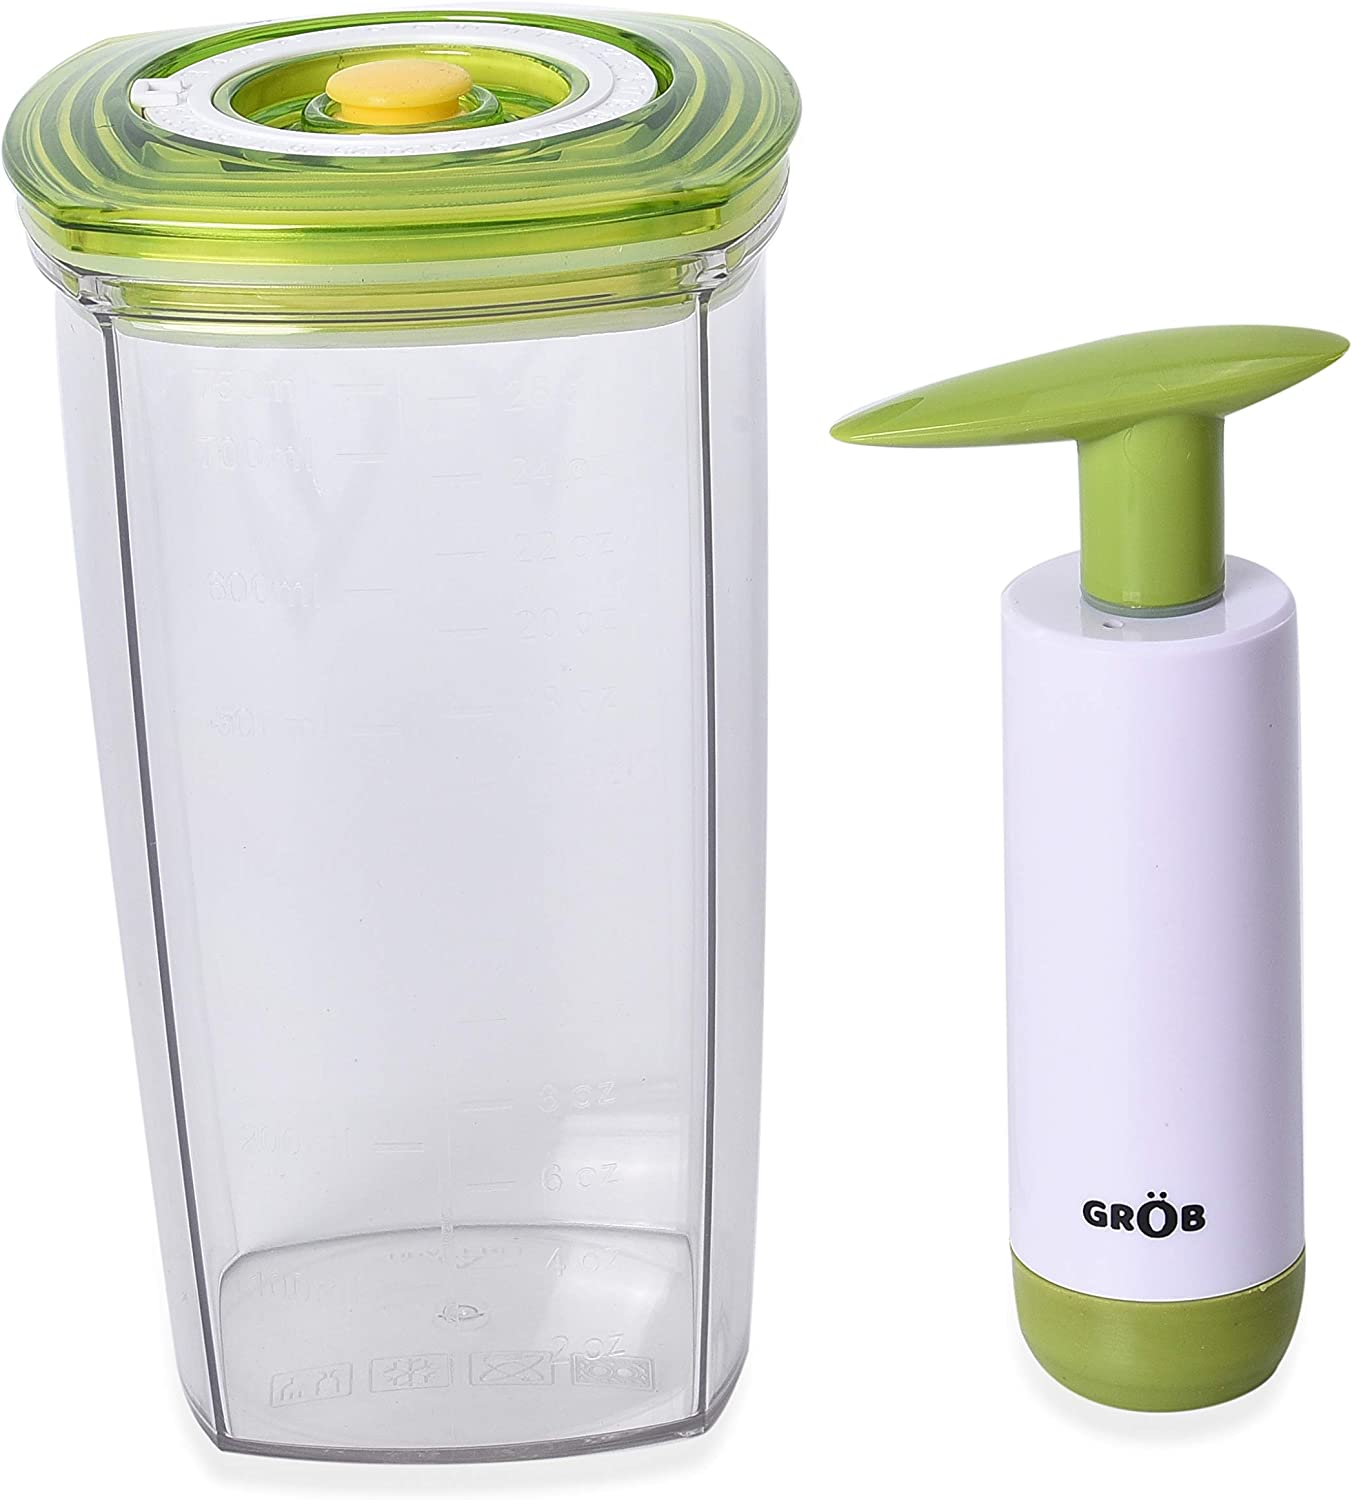 Shop LC Delivering Joy Set of 2 Vacuum Seal Juice Saver Container Pump Home Kitchen Set